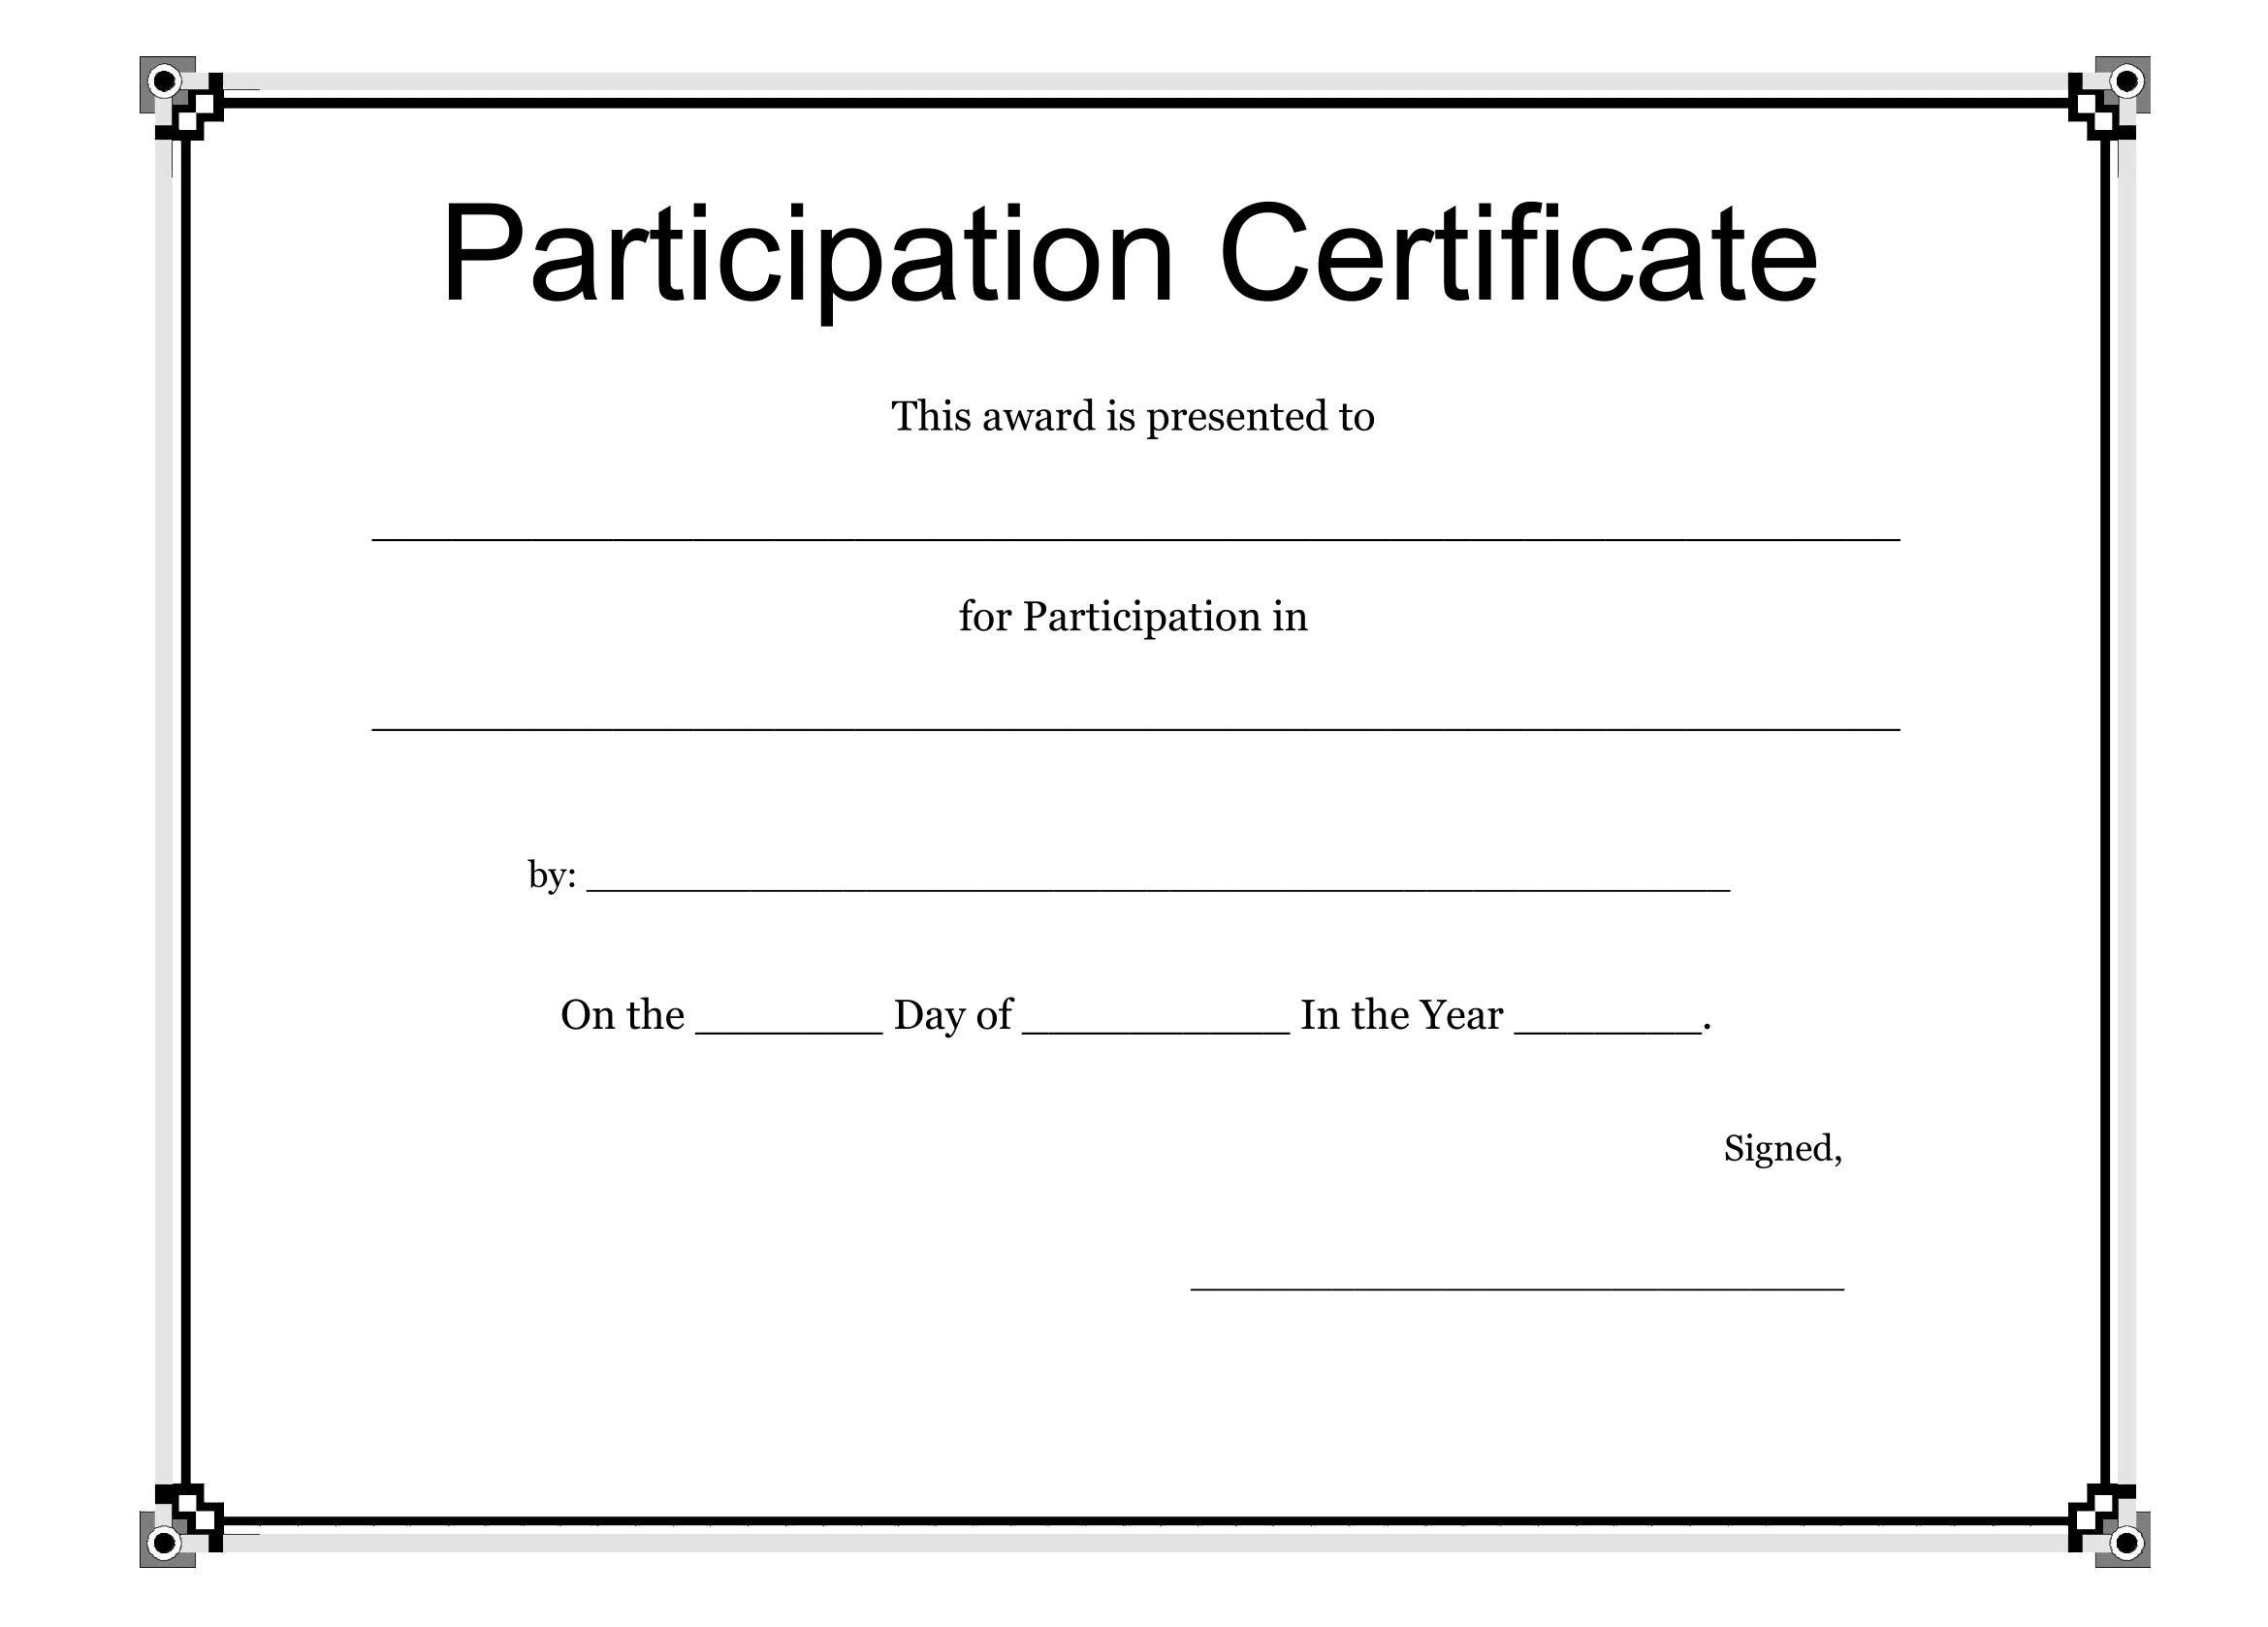 Participation certificate template free download for Certificate of participation template